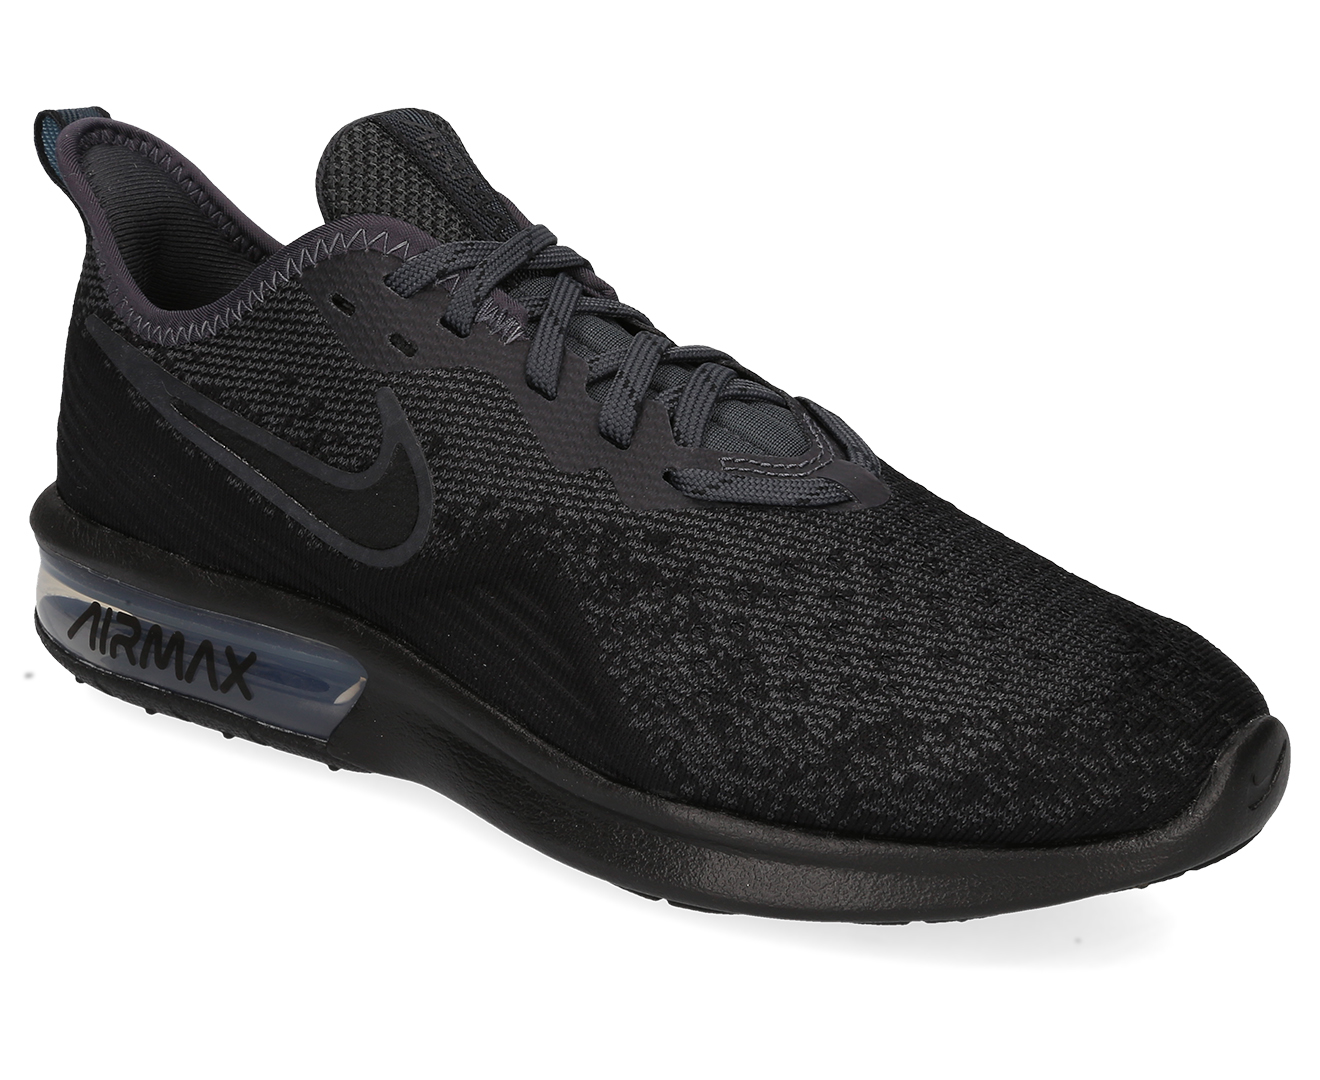 Nike Women's Air Max Sequent 4 Running Sports Shoes BlackBlack Anthracite